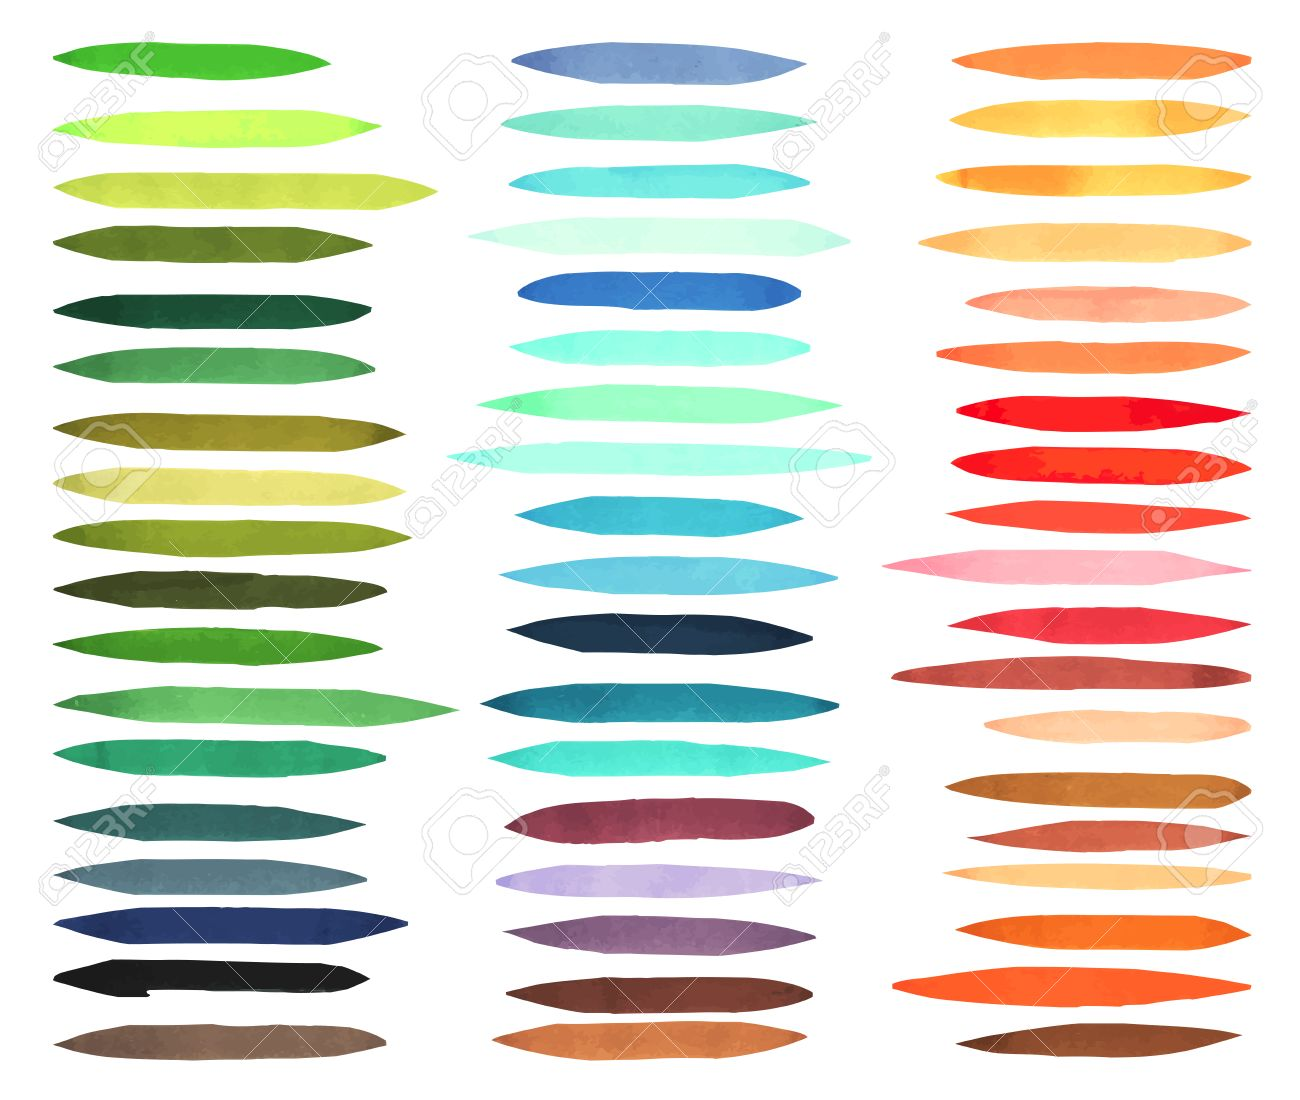 color stripes brushes drawn with japan markers stylish elements